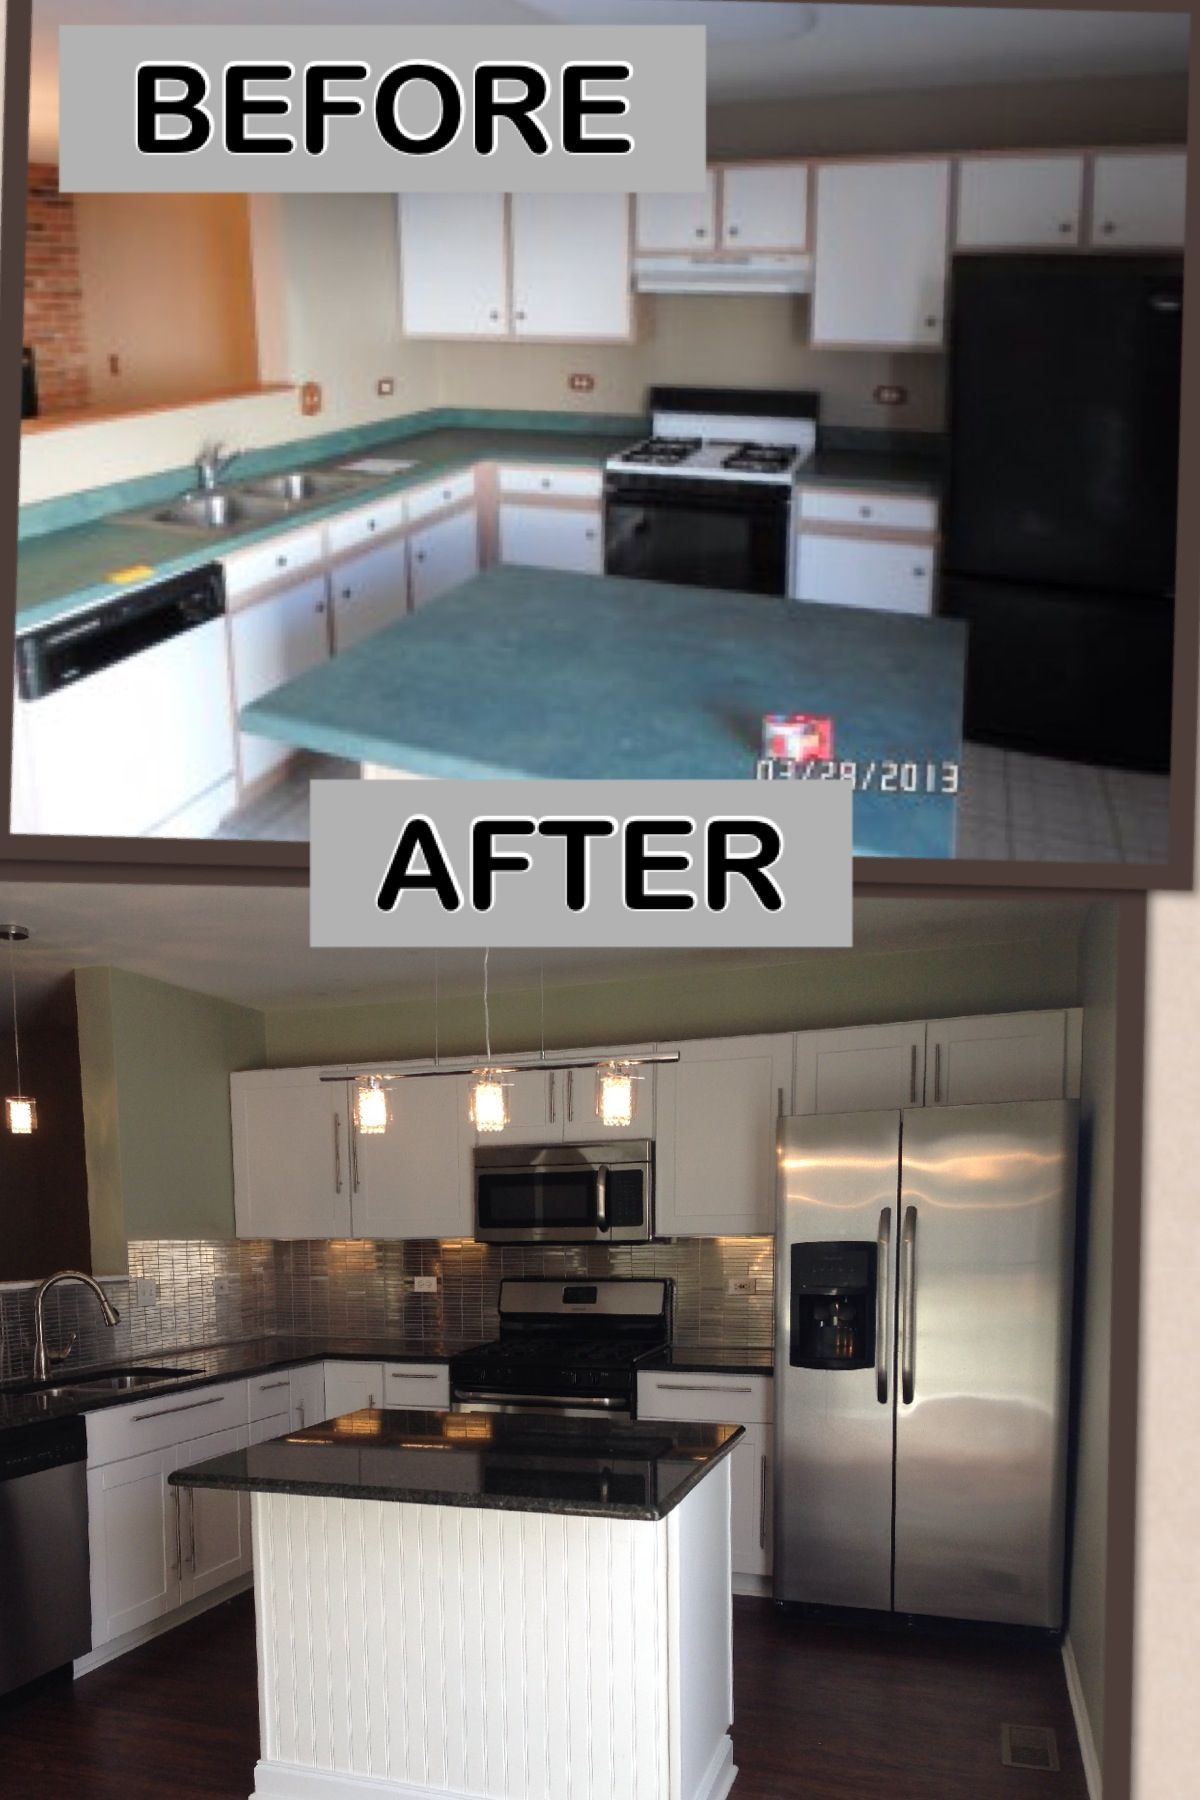 Kitchen remodel on a budget everything brand new for for Renovating a kitchen on a budget